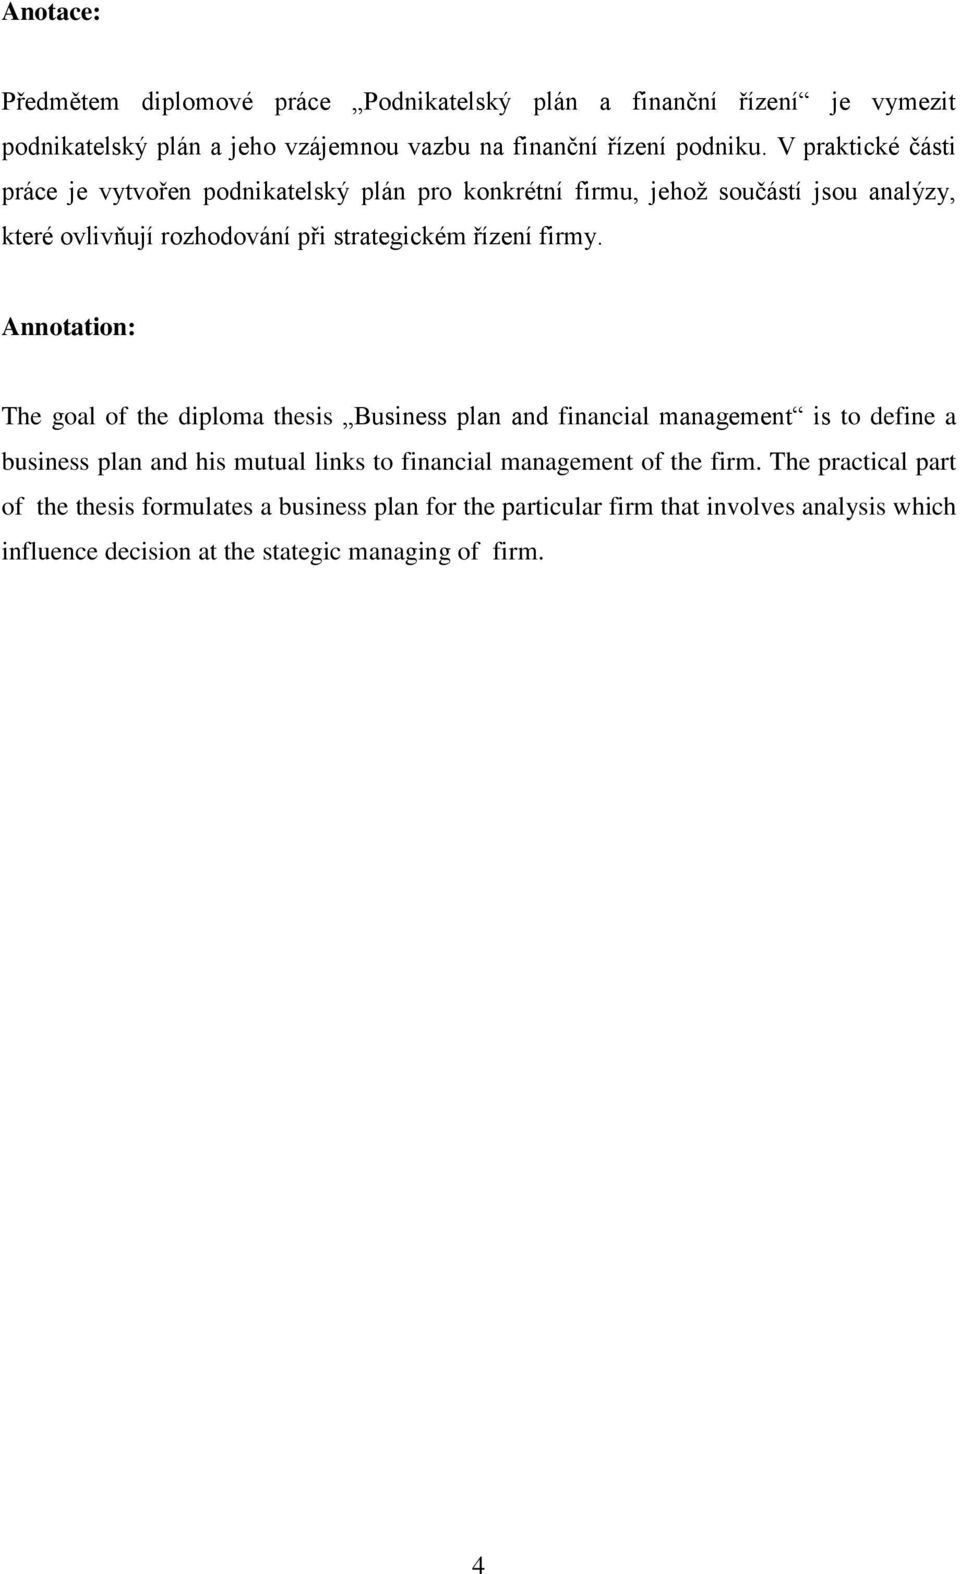 Annotation: The goal of the diploma thesis Business plan and financial management is to define a business plan and his mutual links to financial management of the